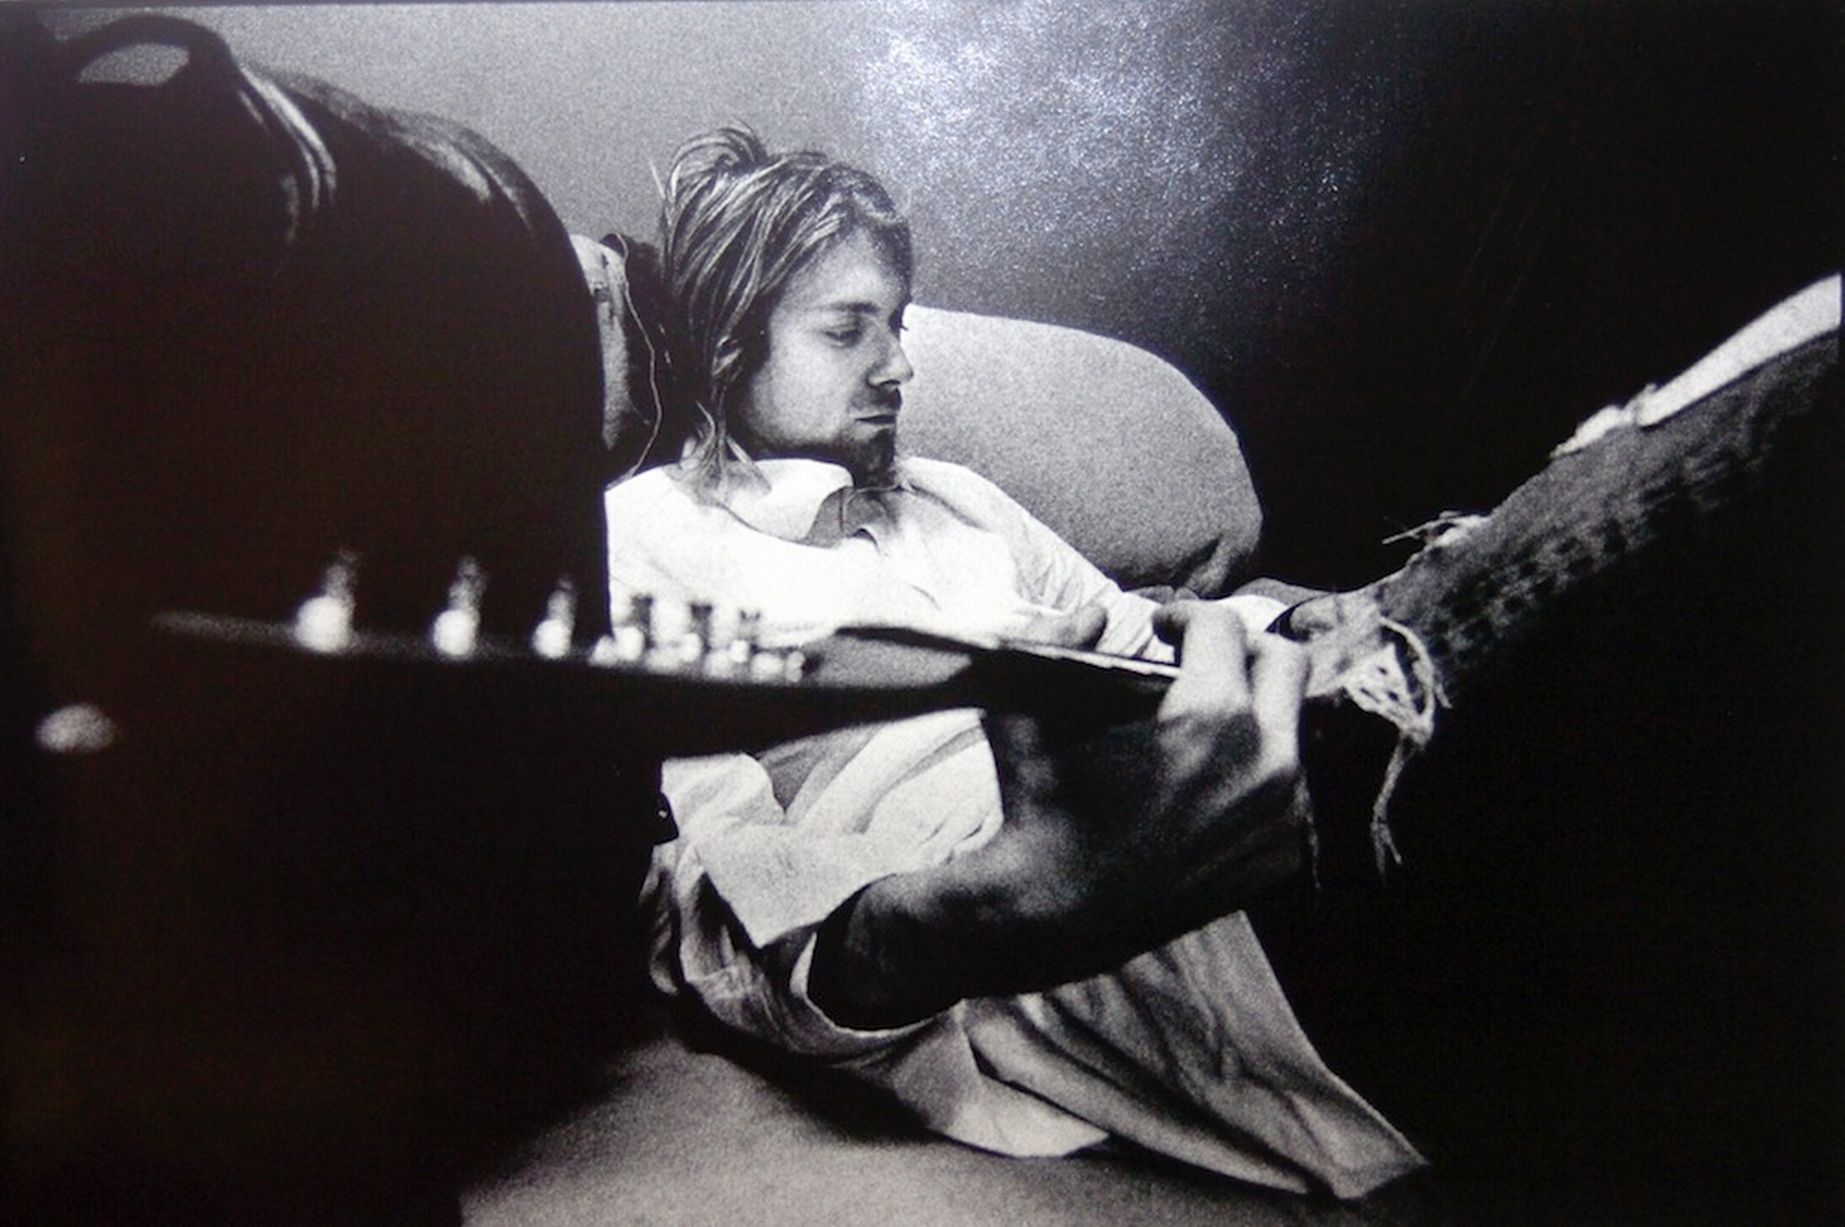 kurt cobain rare photo